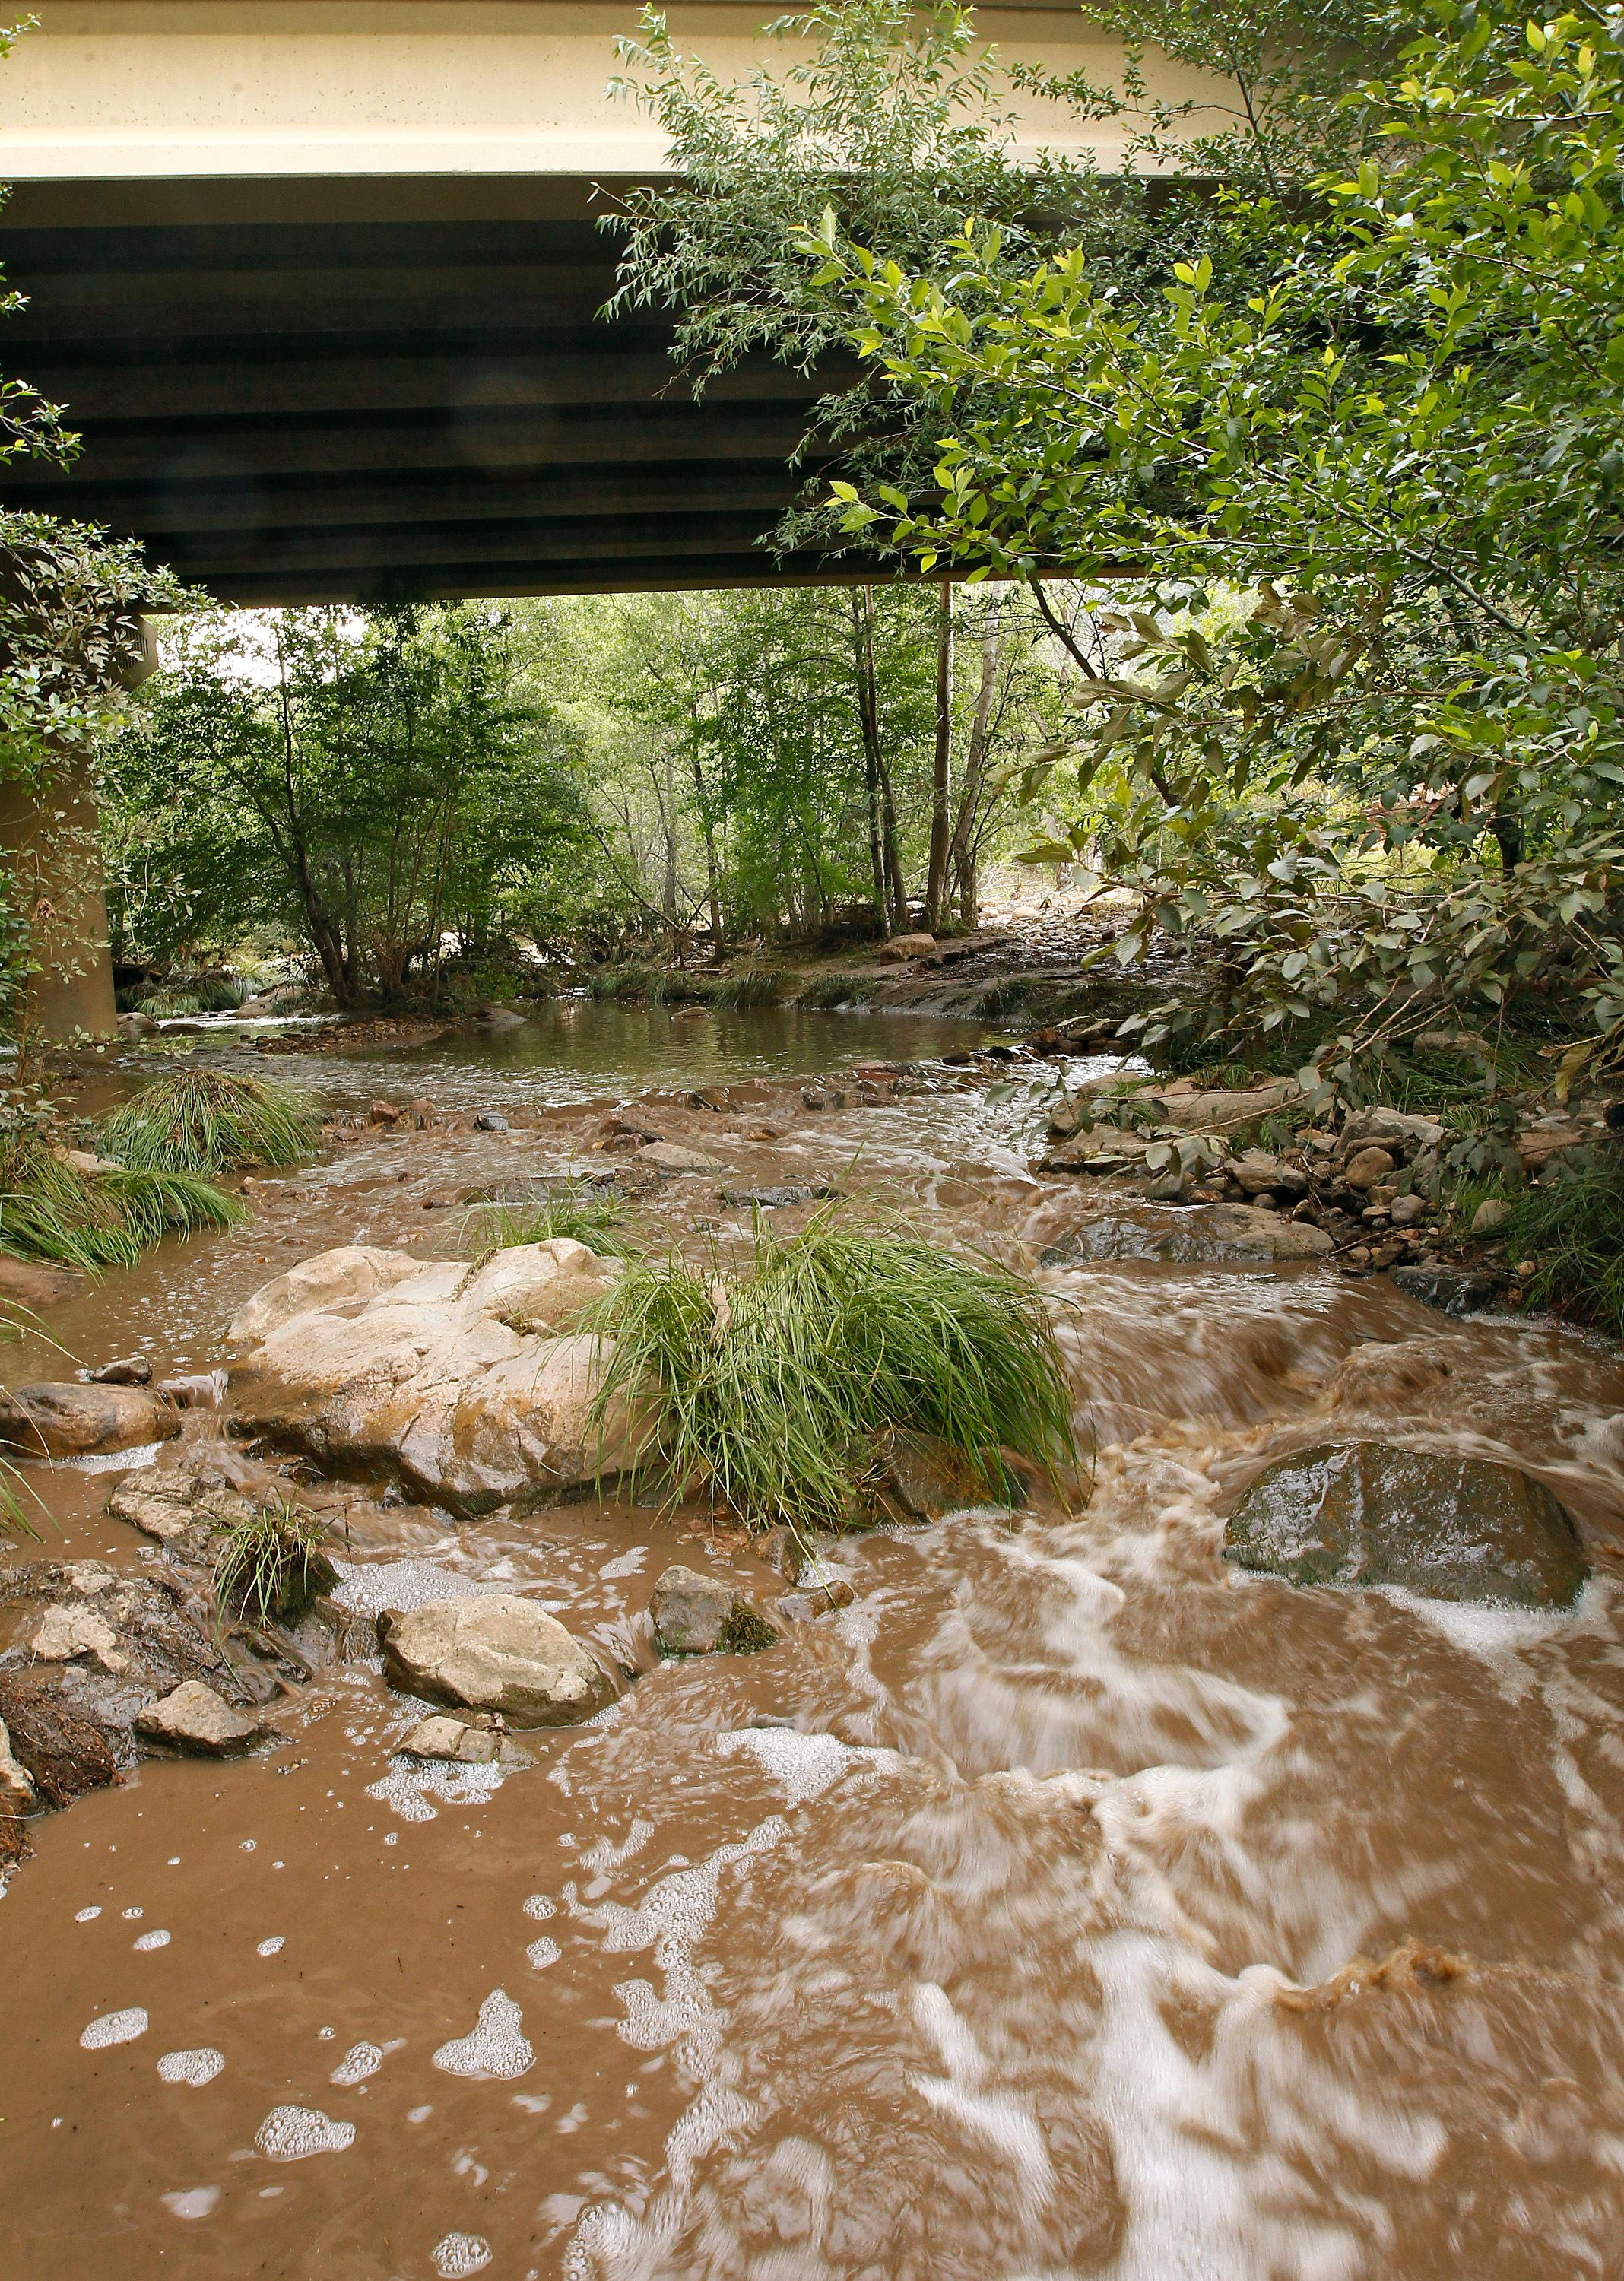 Muddy floodwaters of the East Verde River flow under a bridge where at least one victim of a flash flood was found during a search and rescue operation by the Gila County Sheriff's Office on Sunday, July 16, 2017, in Payson, Ariz. Search and rescue crews, including 40 people on foot and others in a helicopter, have recovered bodies of children and adults, some as far as two miles down the river after Saturday's flash flooding poured over a popular swimming area inside the Tonto National Forest in central Arizona. (AP Photo/Ralph Freso)